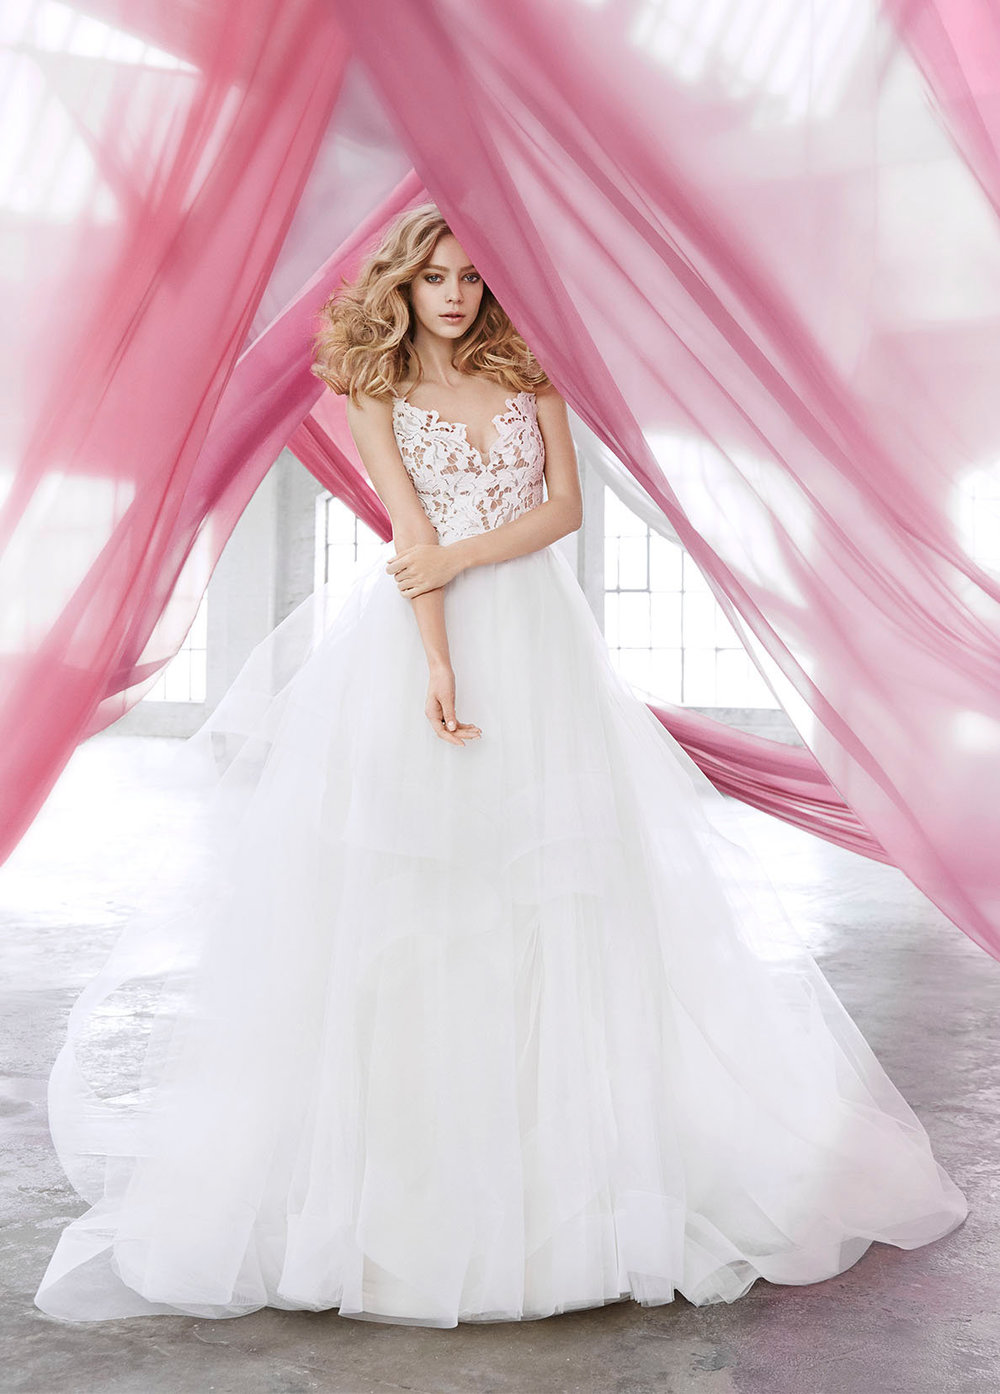 blush-hayley-paige-bridal-lace-tulle-ball-gown-scalloped-v-neck-strap-tiered-tulle-horsehair-trim-1600_lg.jpg